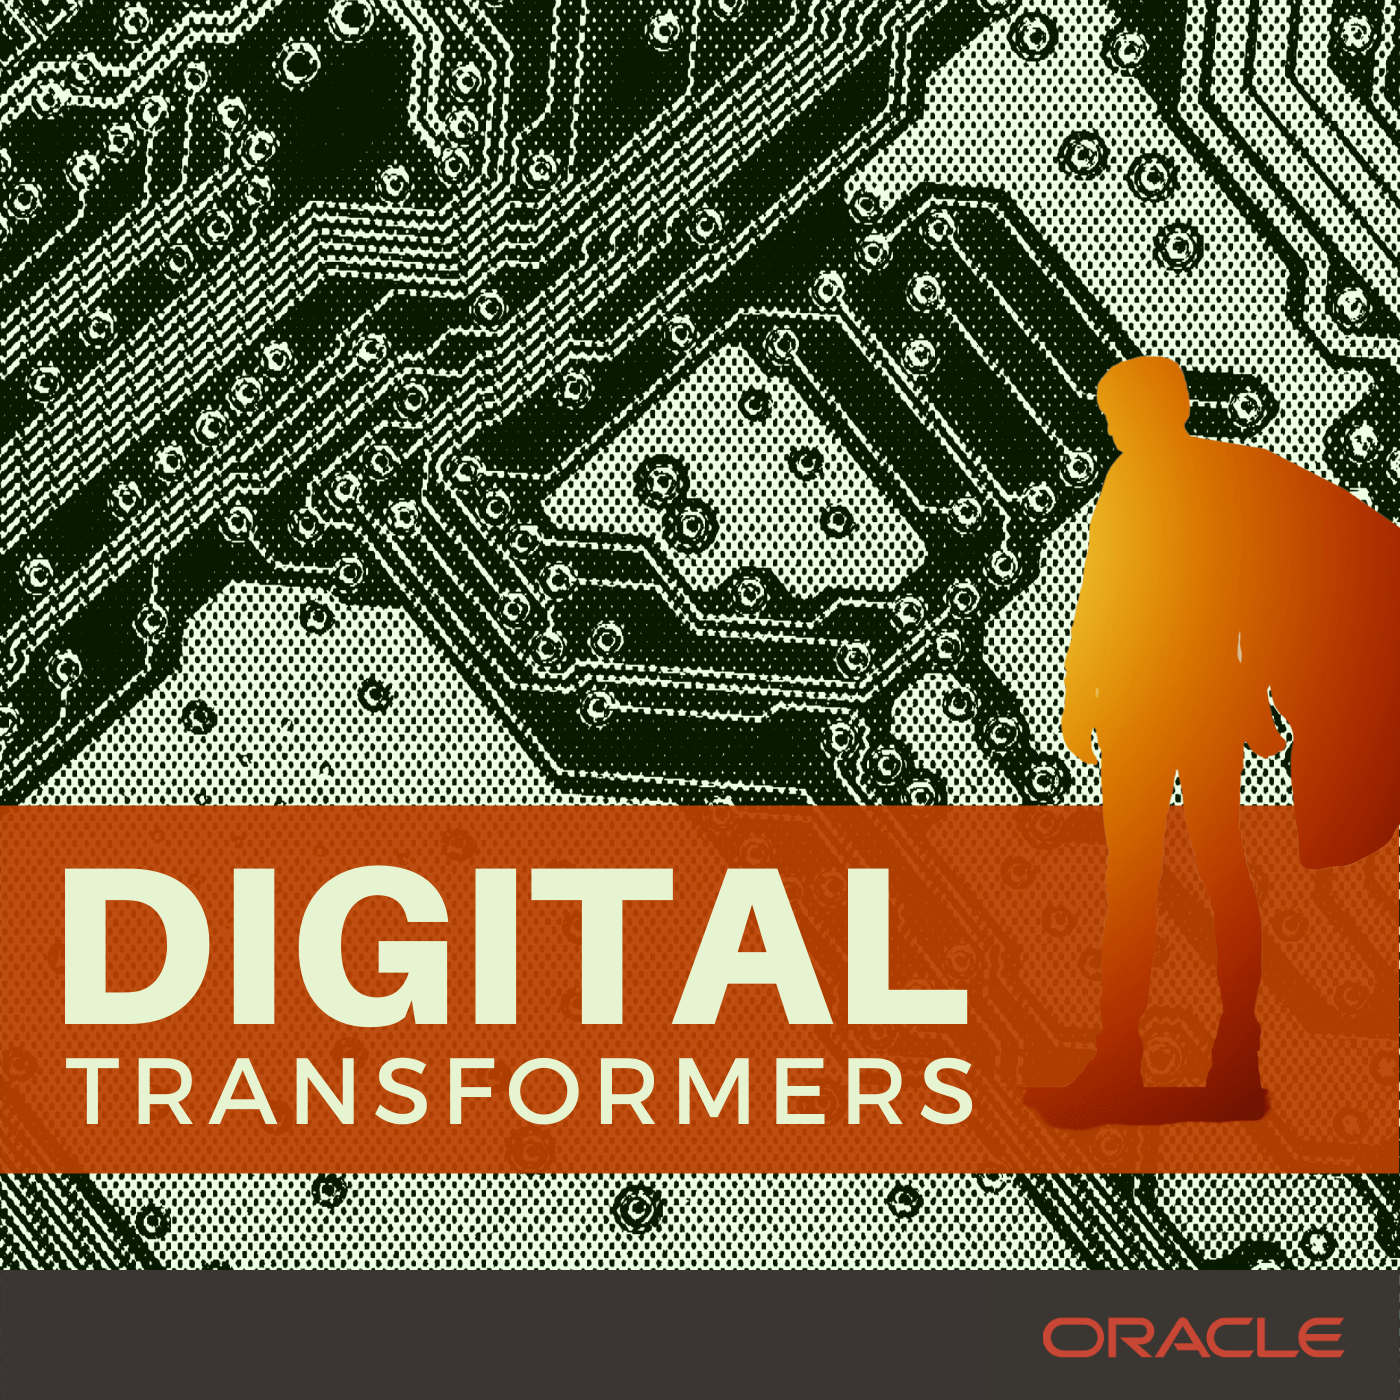 Digital Transformers - Podcast Oracle